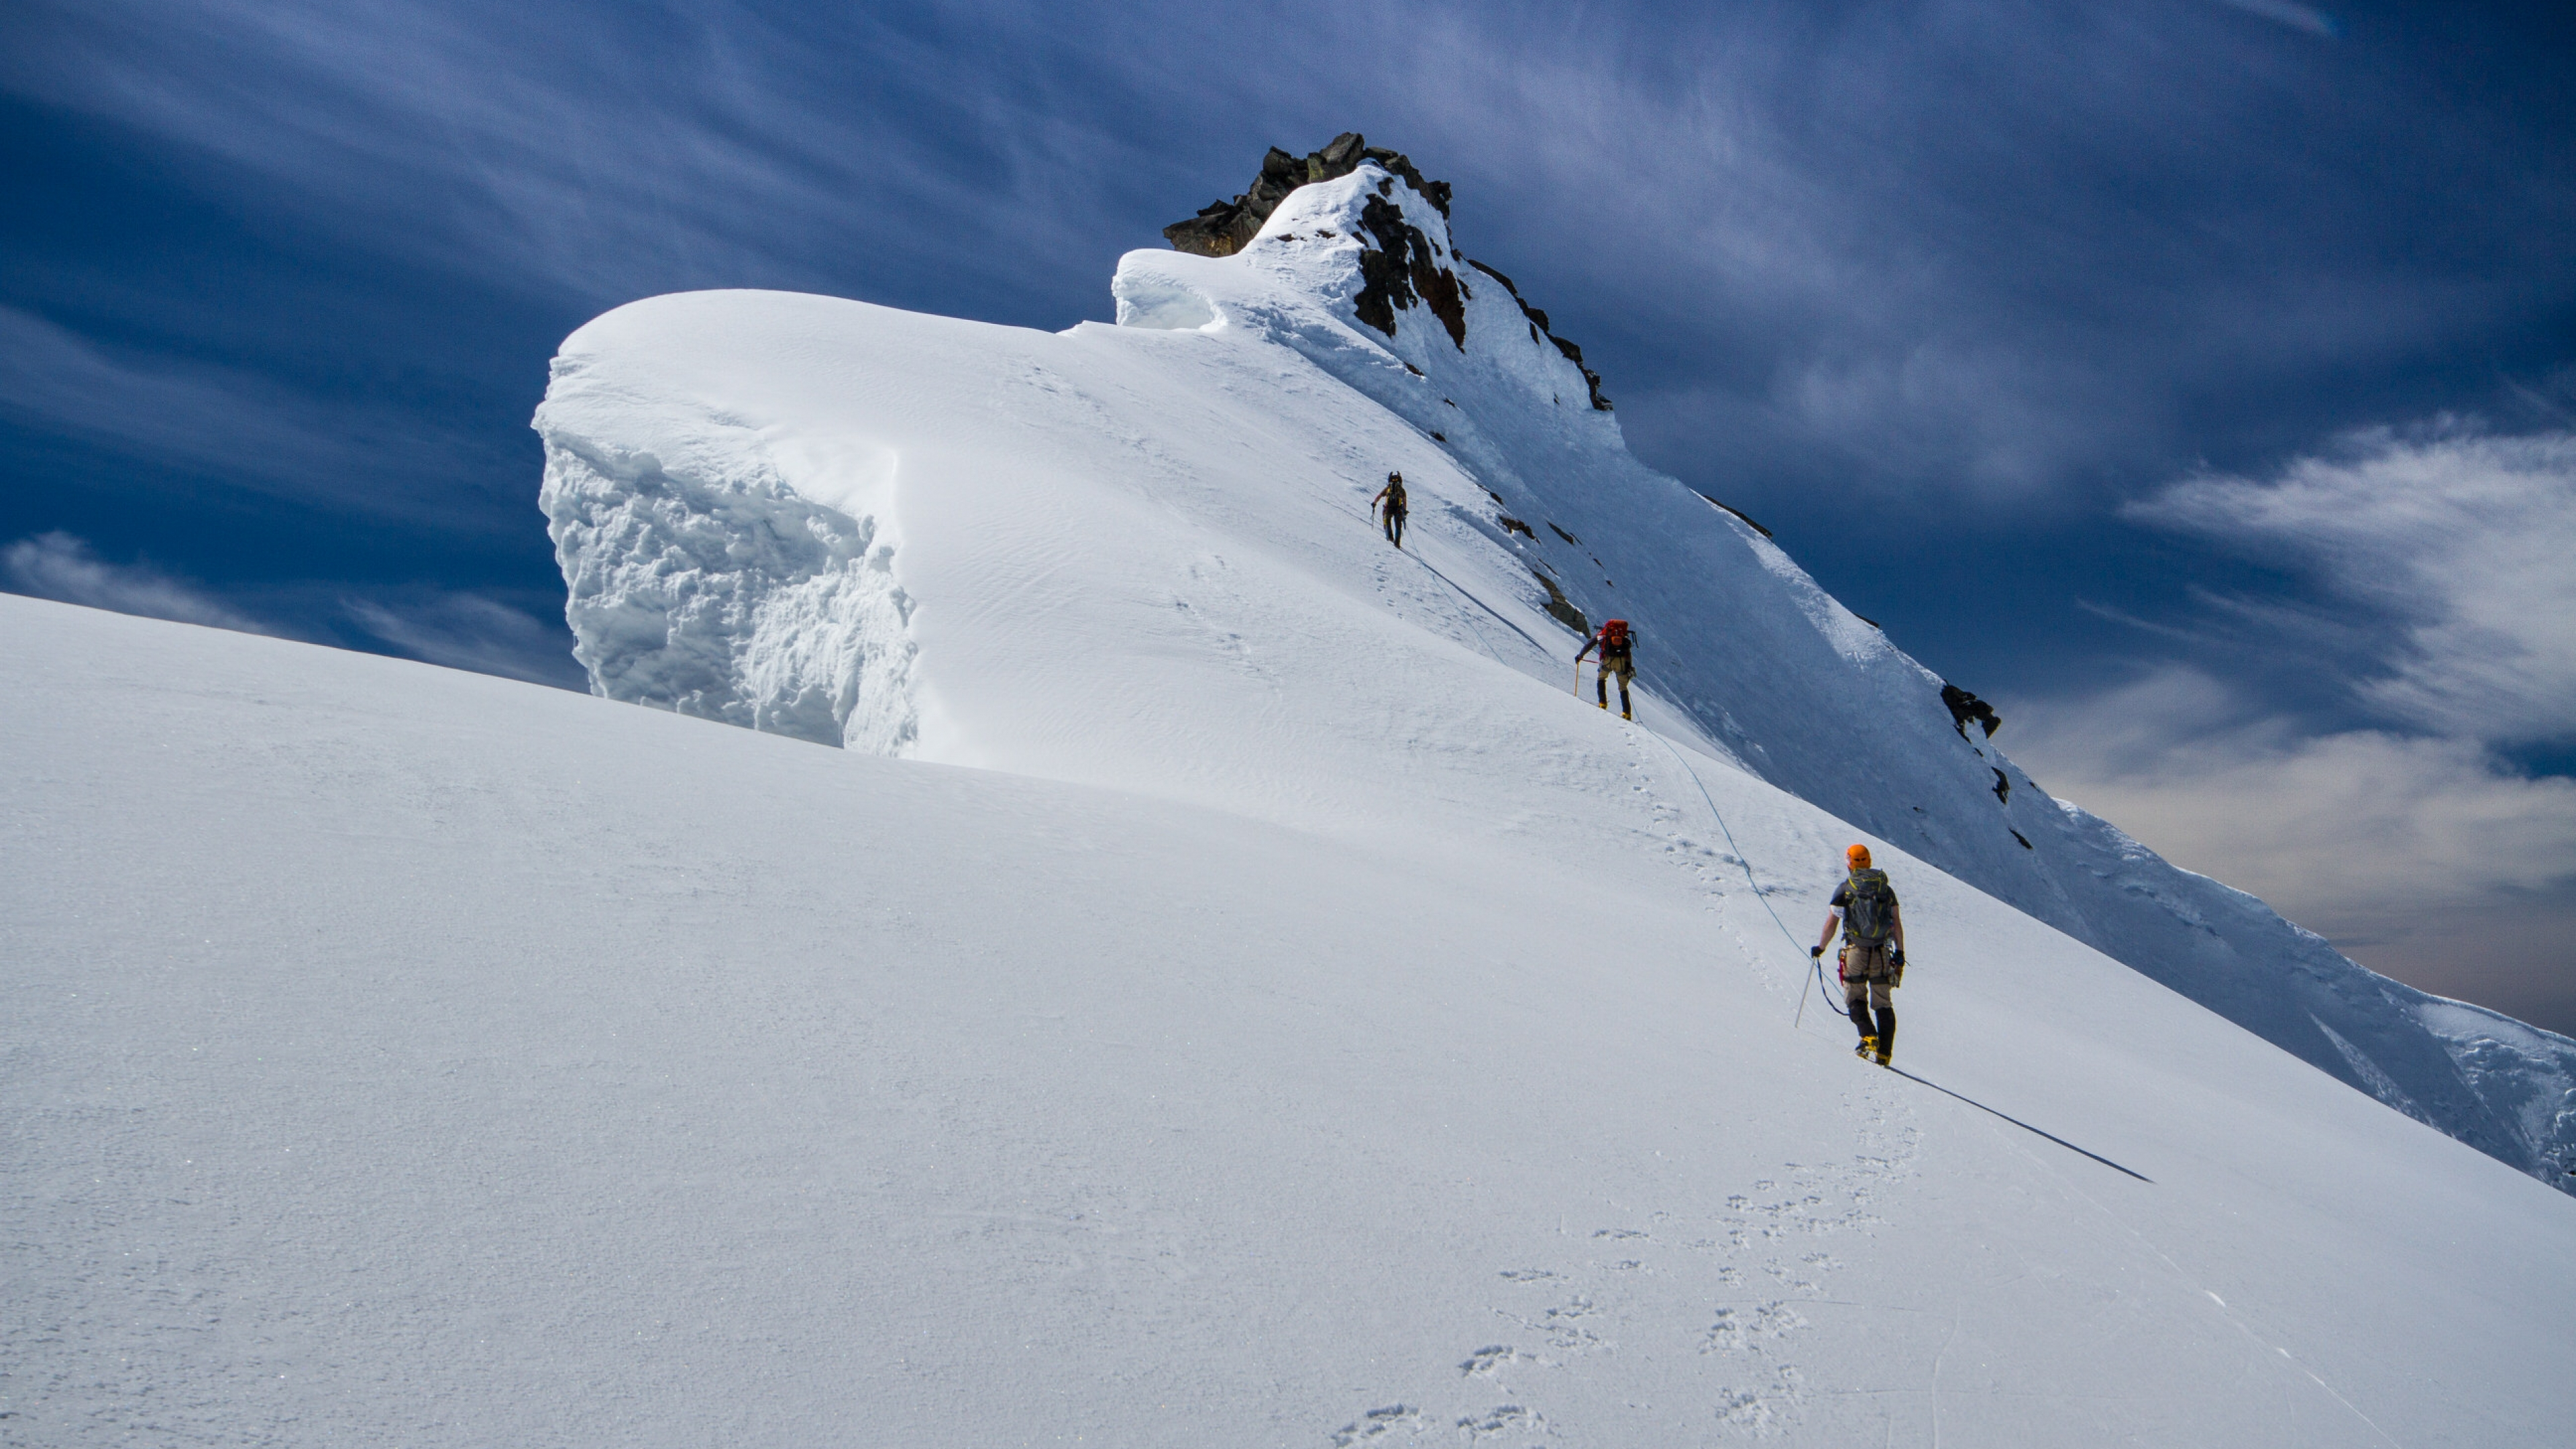 Roped mountaineering team near the top of Sahale Peak at North Cascades National Park